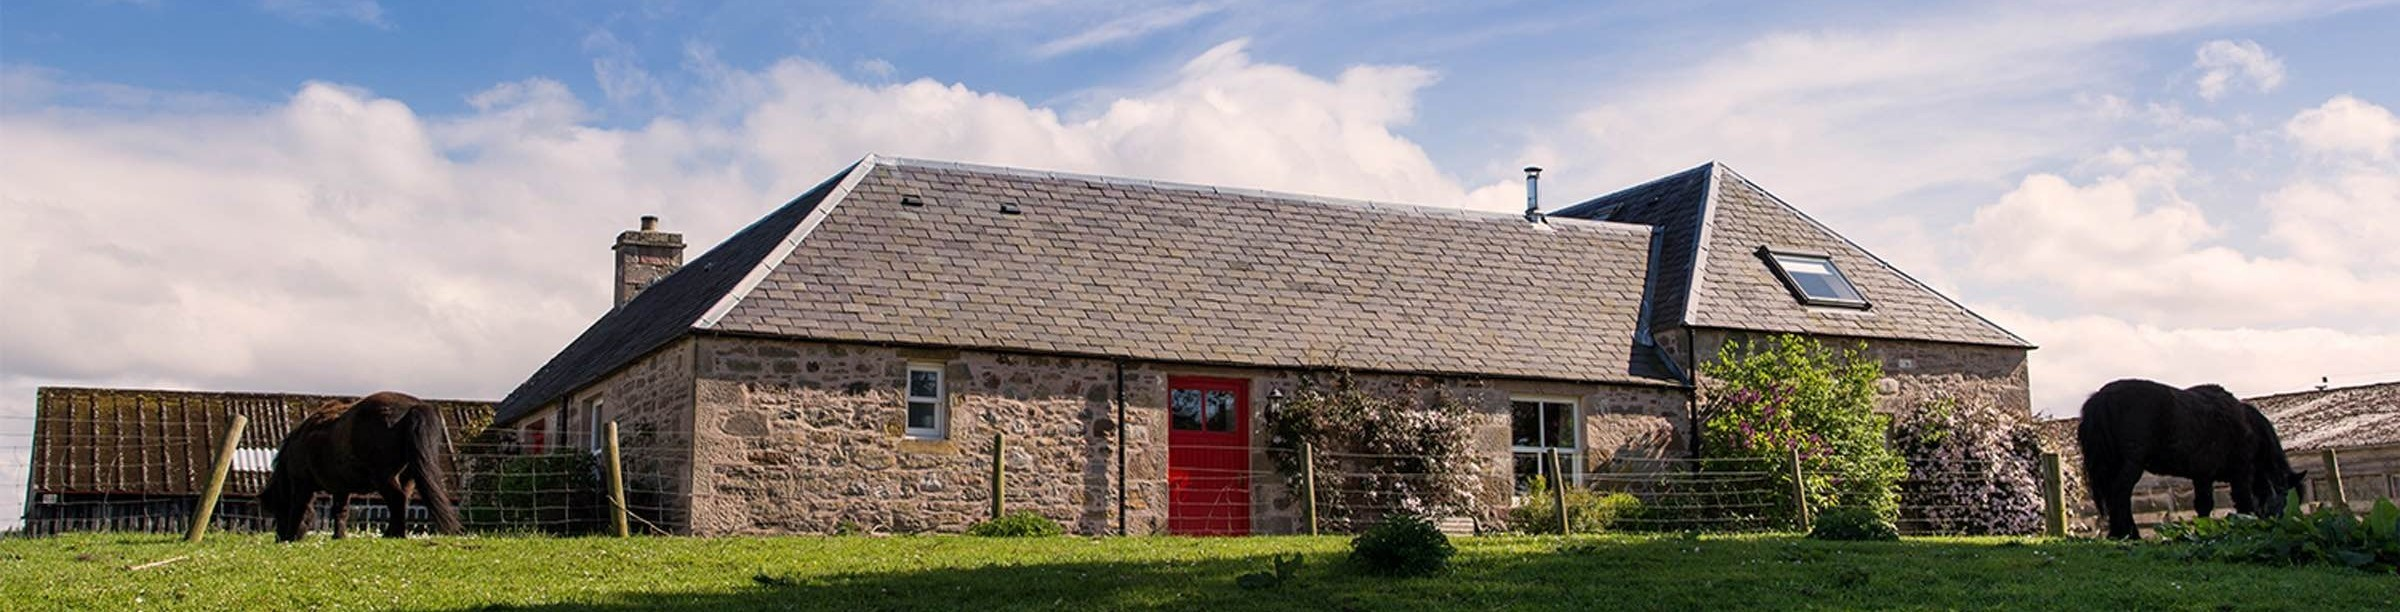 Self Catering Holiday Cottages near Inverness